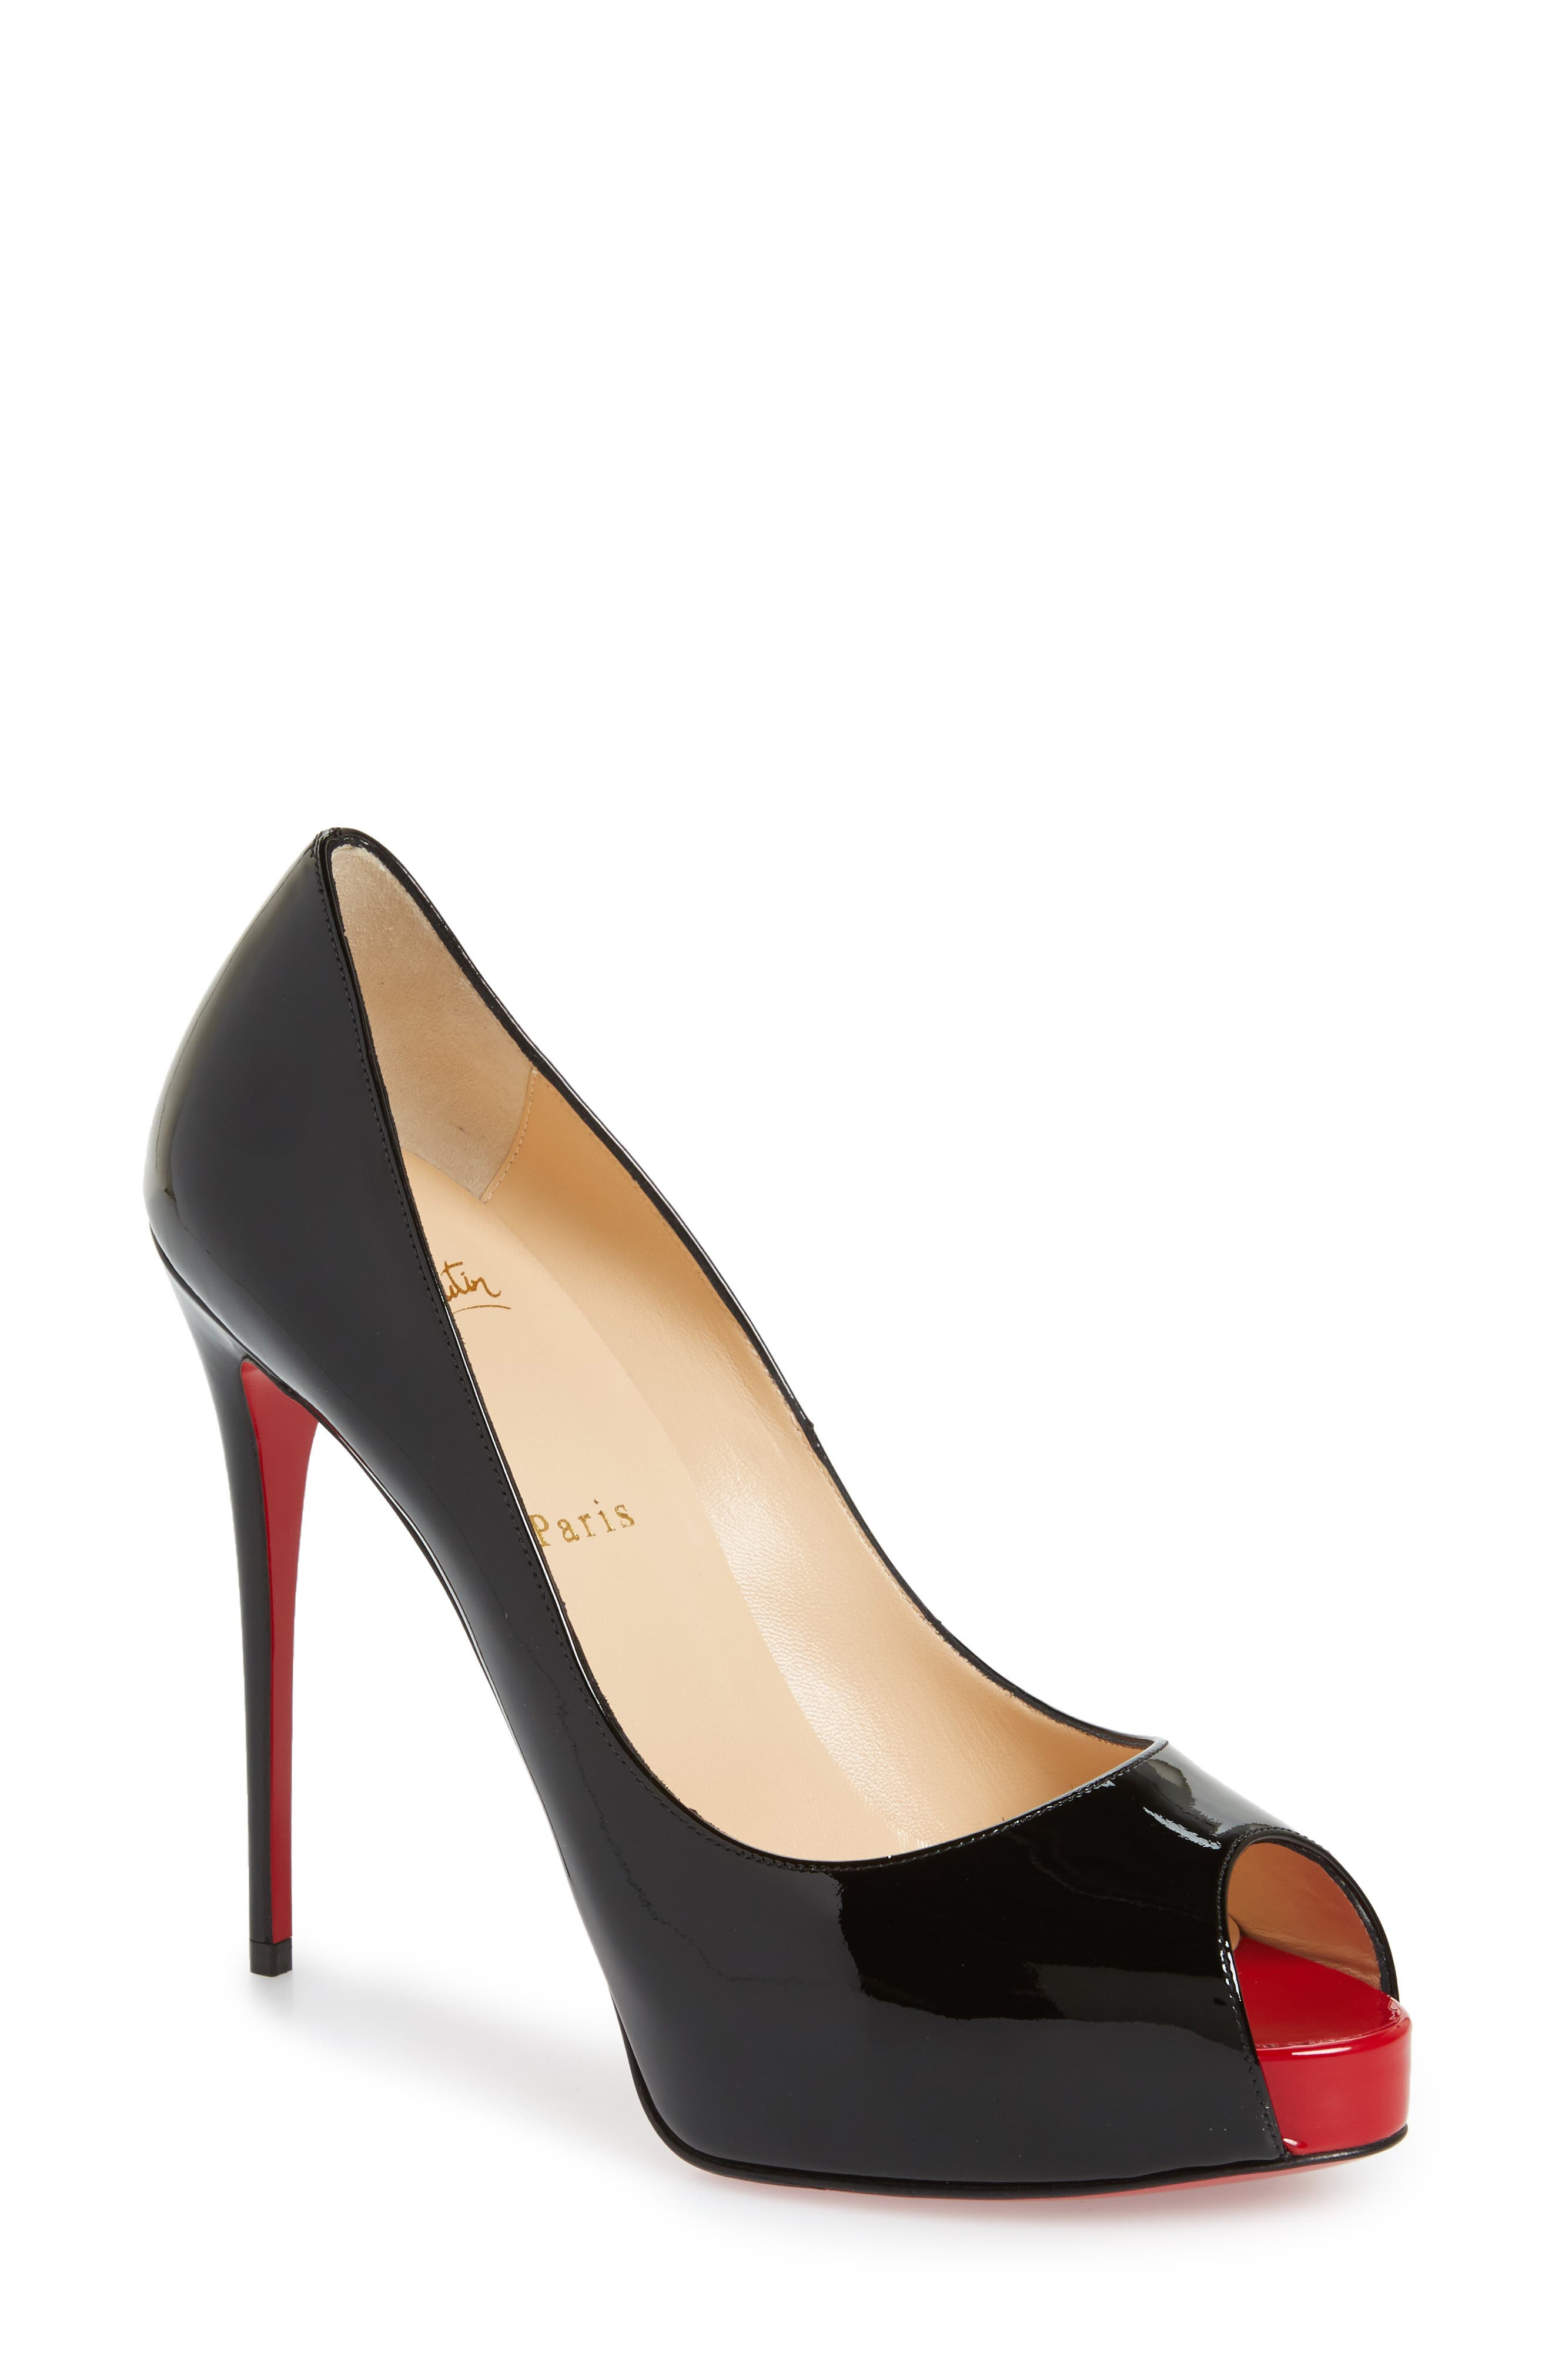 'Prive' Open Toe Pump,                         Main,                         color, Black/ Red